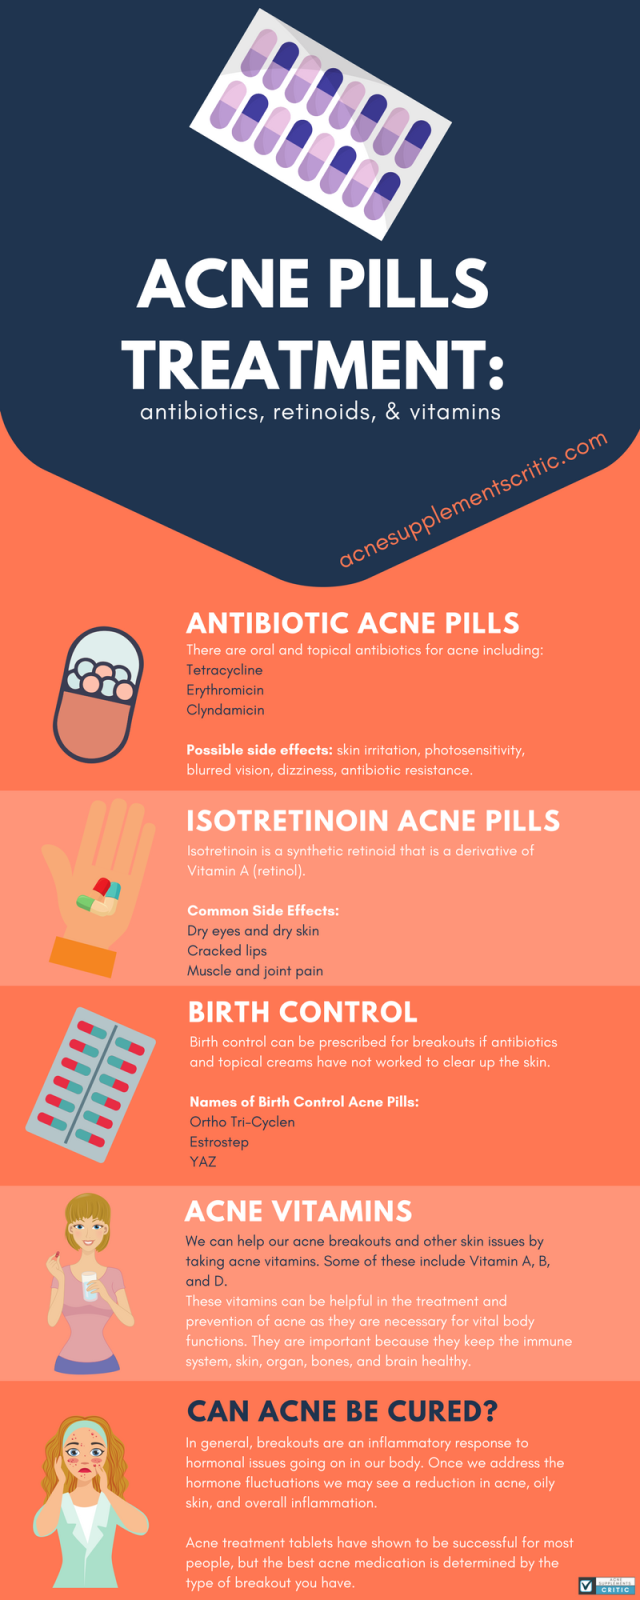 Acne-Pills-Treatment